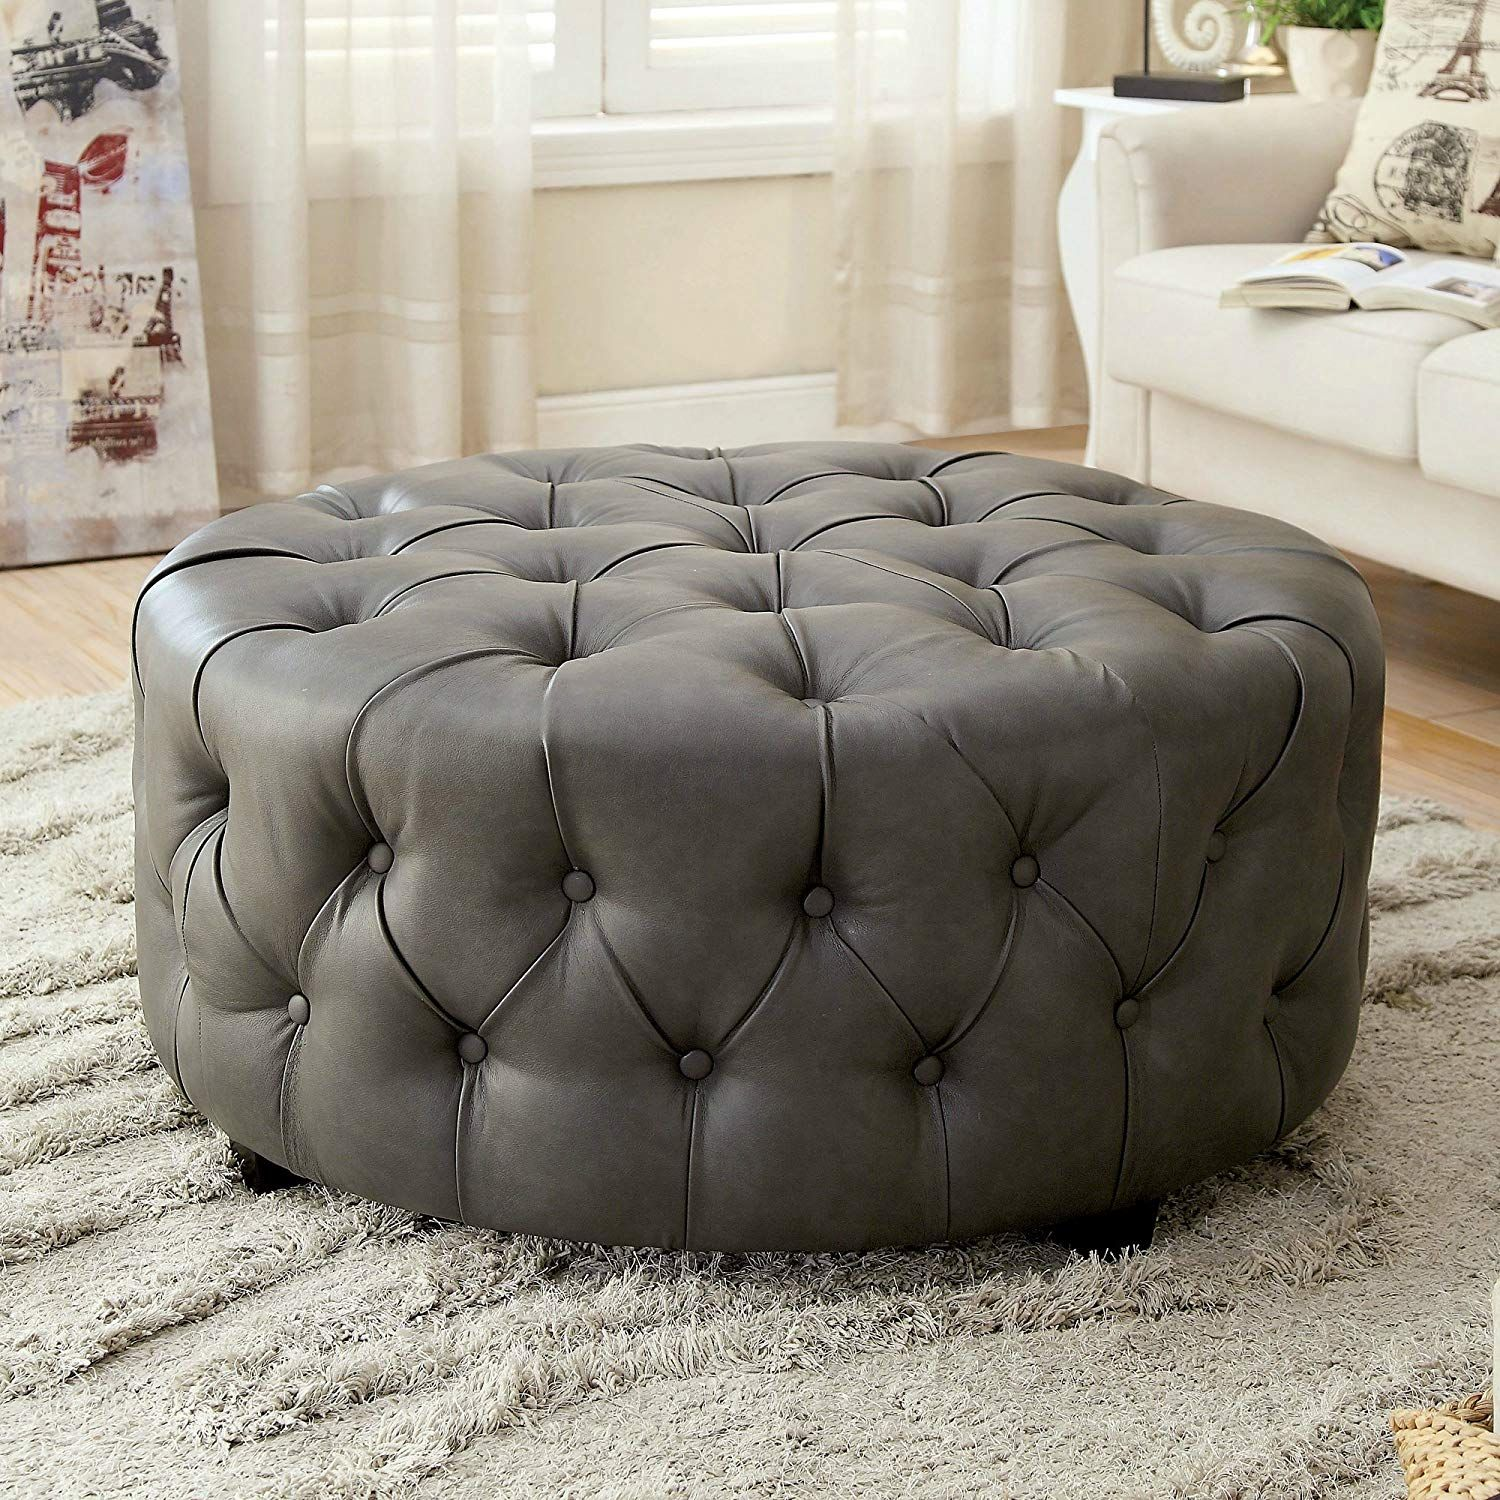 Tufted Round Leather Ottoman Large Grey Cocktail Modern Cocktail